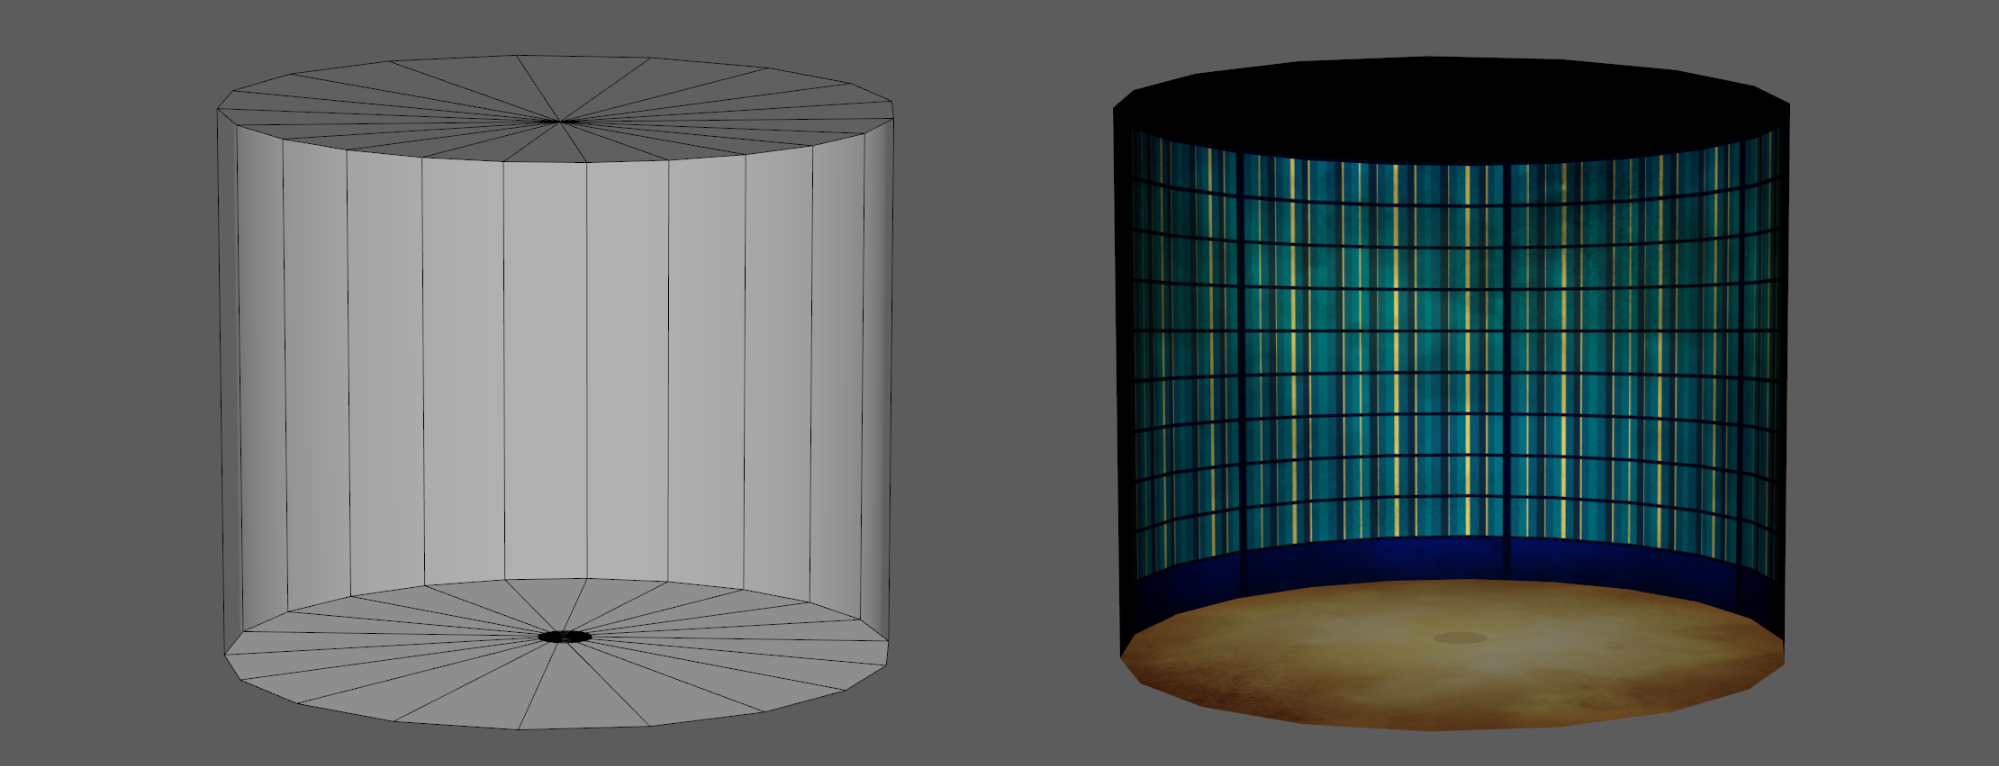 Maya background cylinder